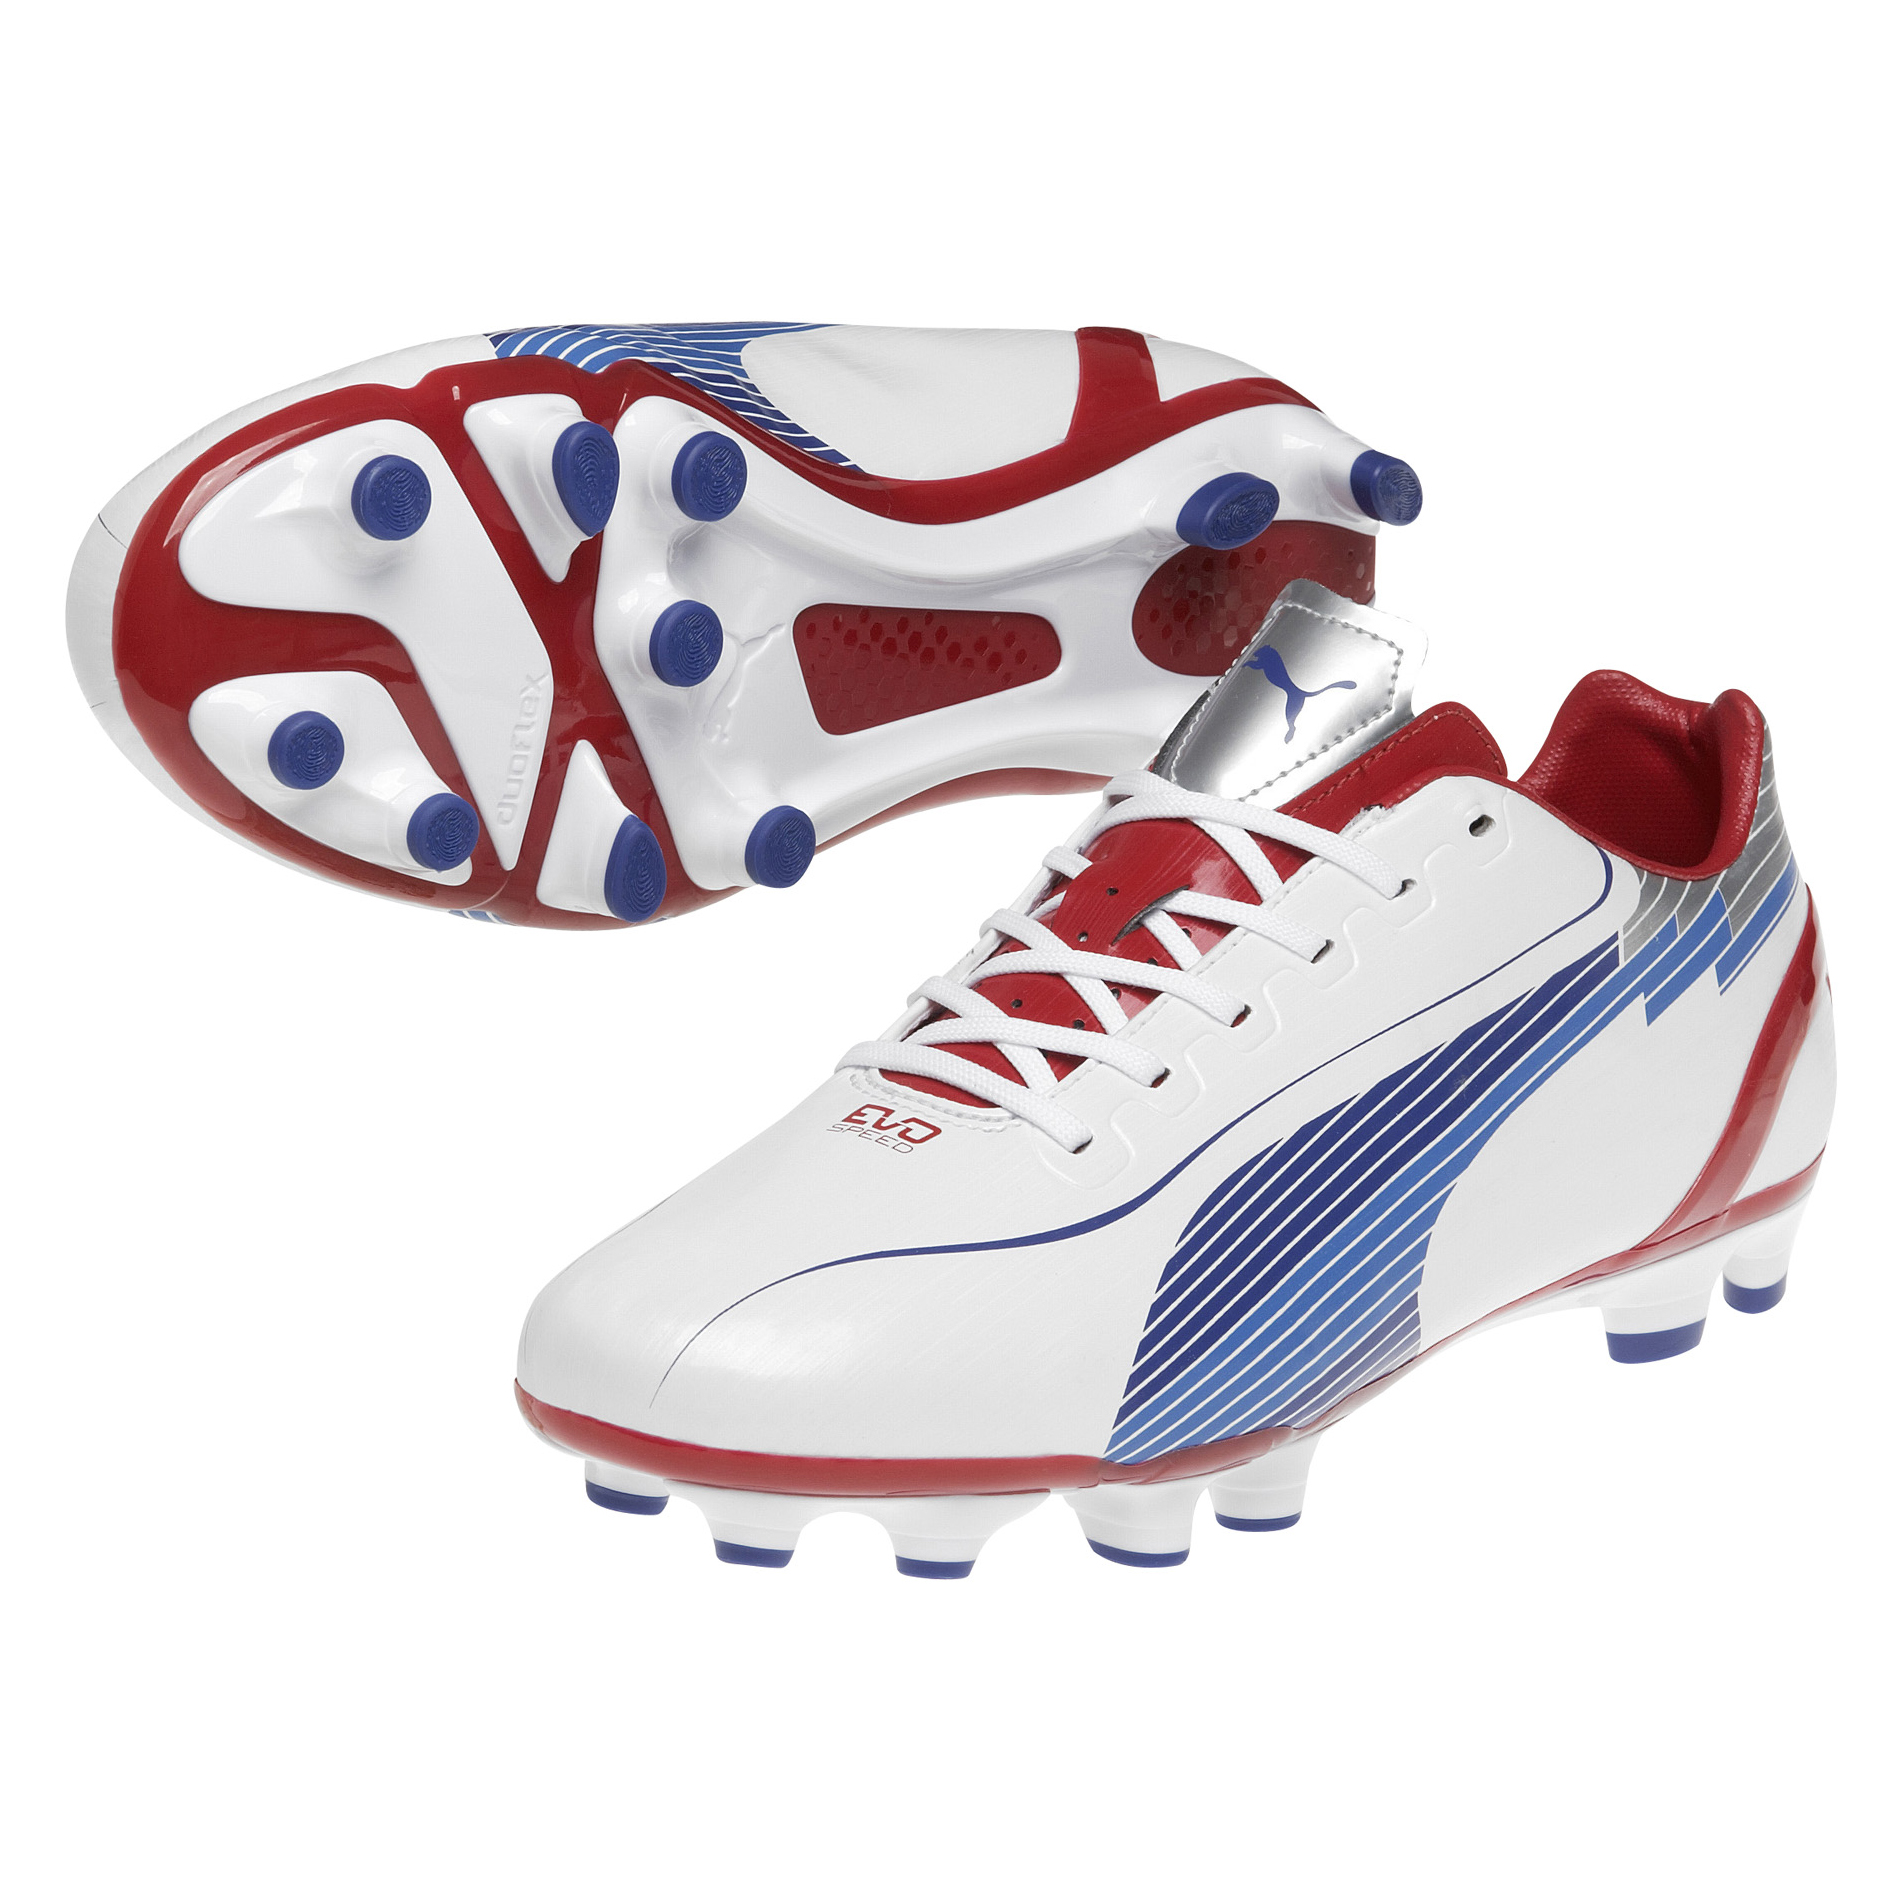 Puma Evospeed 4 Firm Ground Football Boots - White-Limoges-Ribbon Red